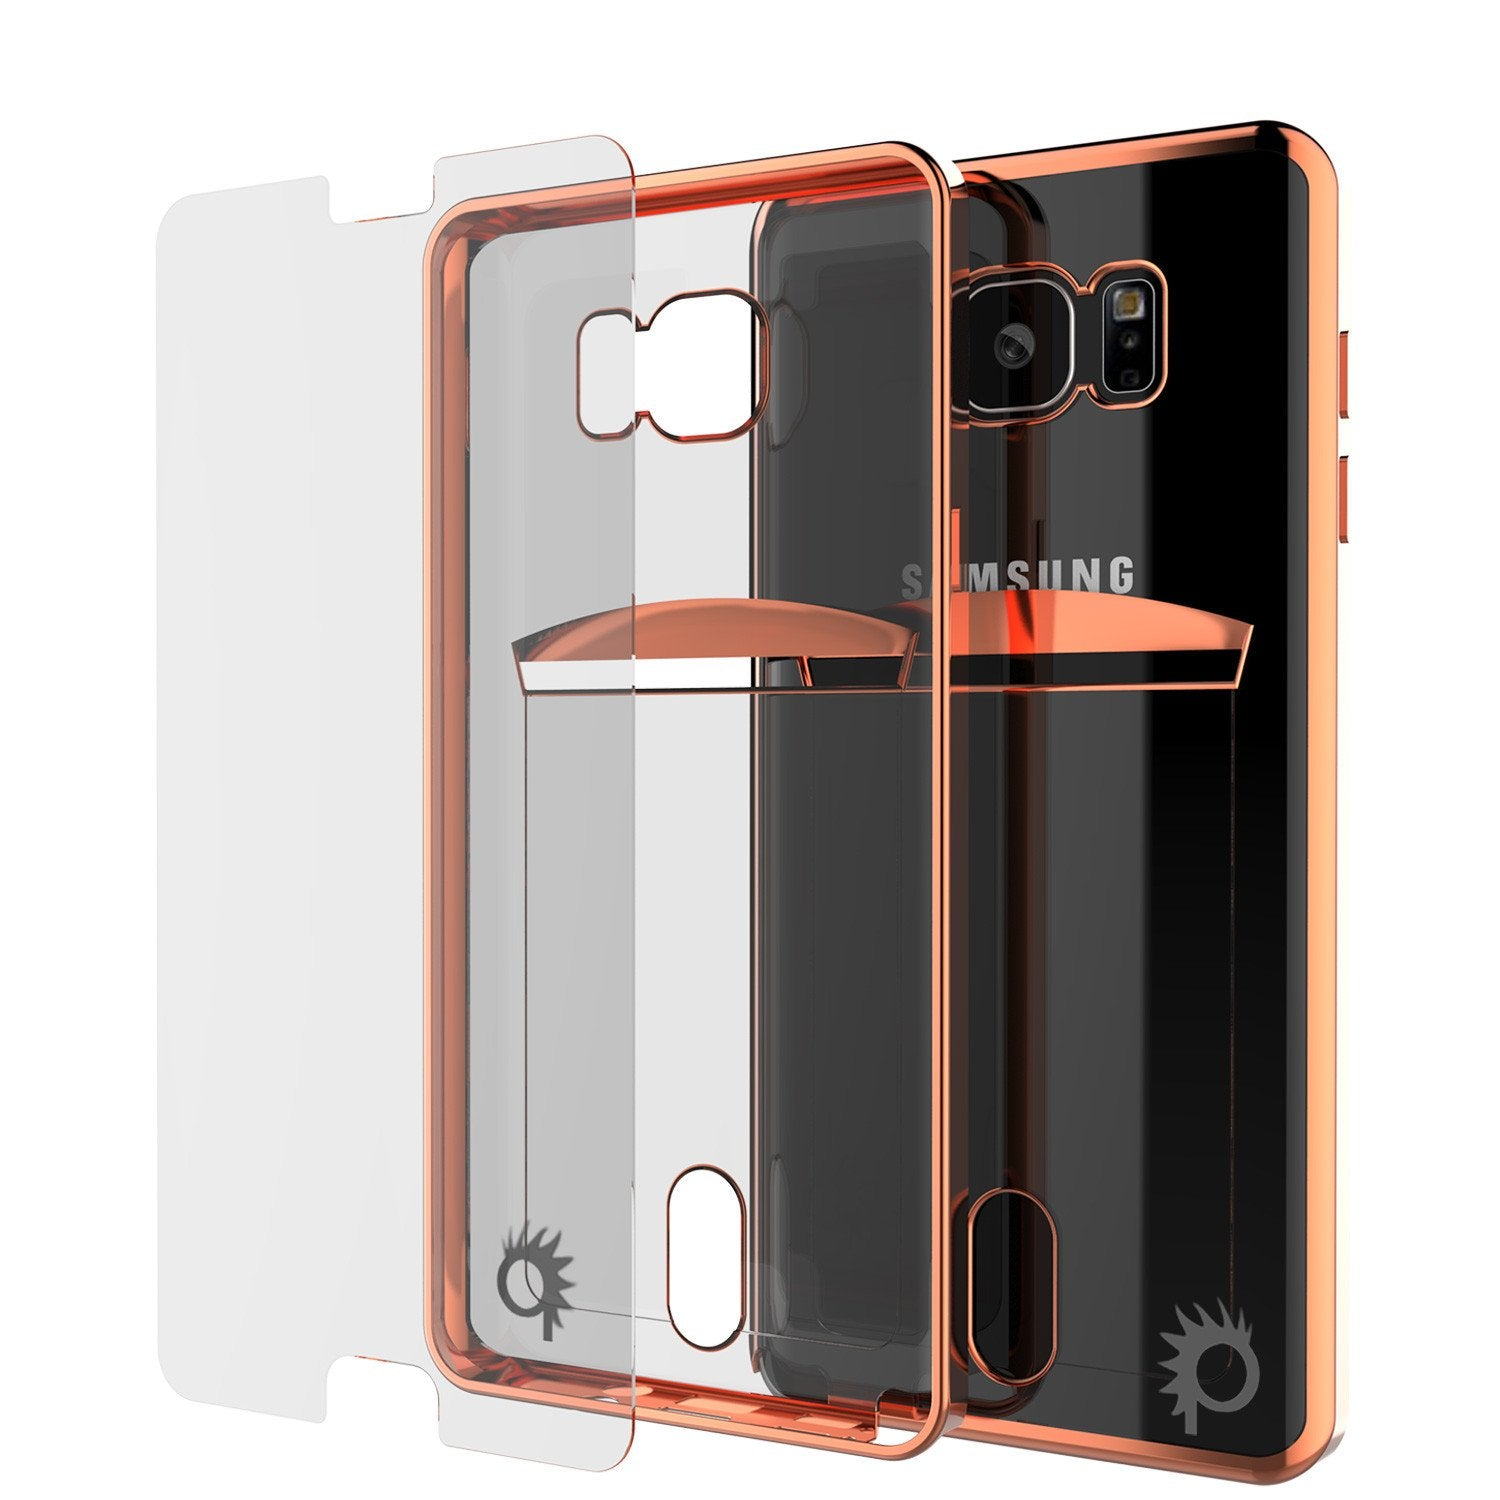 Galaxy Note 5 Case, PUNKCASE® LUCID Rose Gold Series | Card Slot | SHIELD Screen Protector